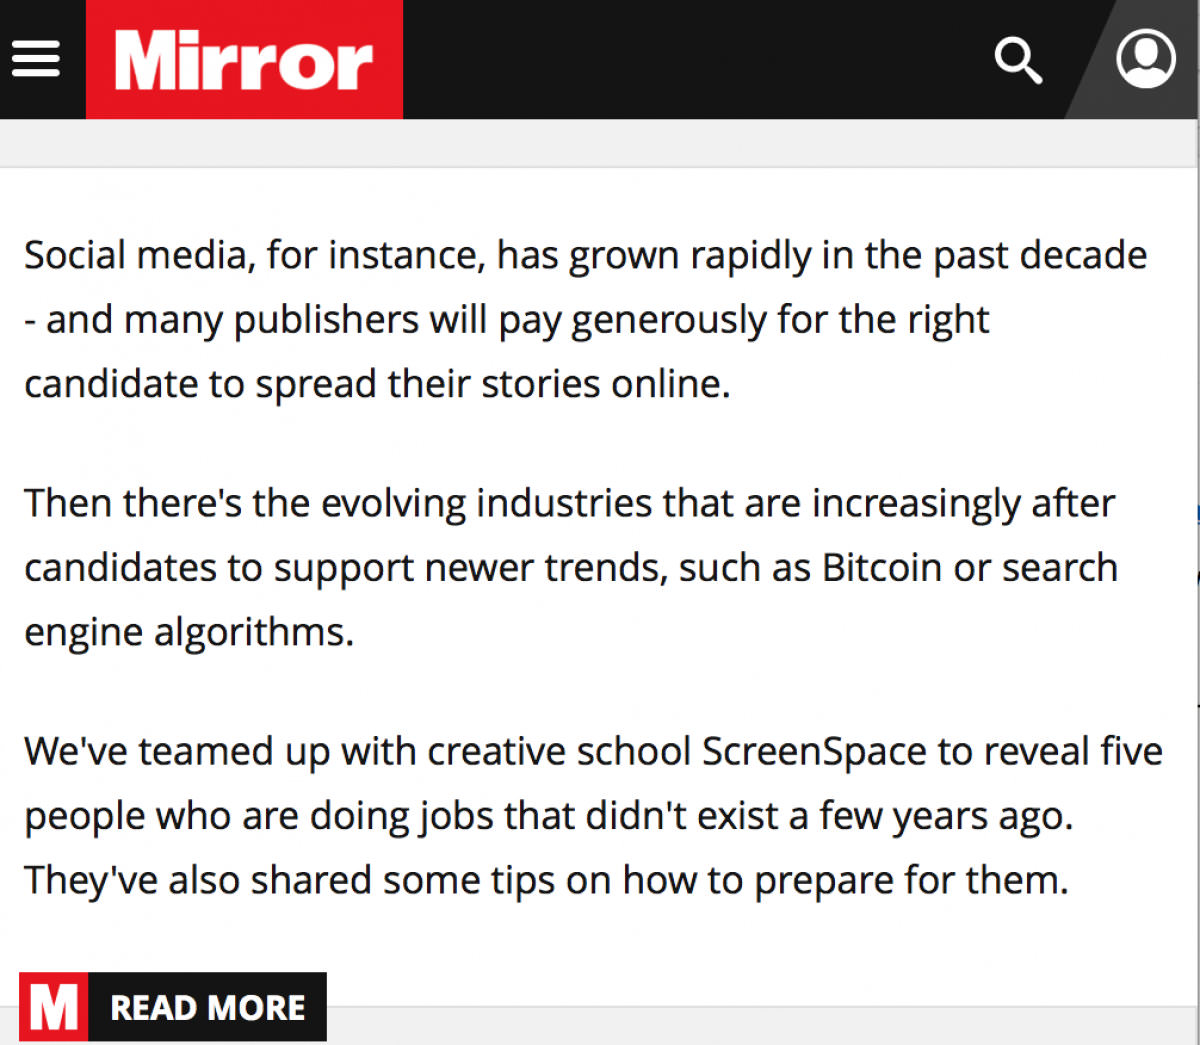 The Mirror: ScreenSpace